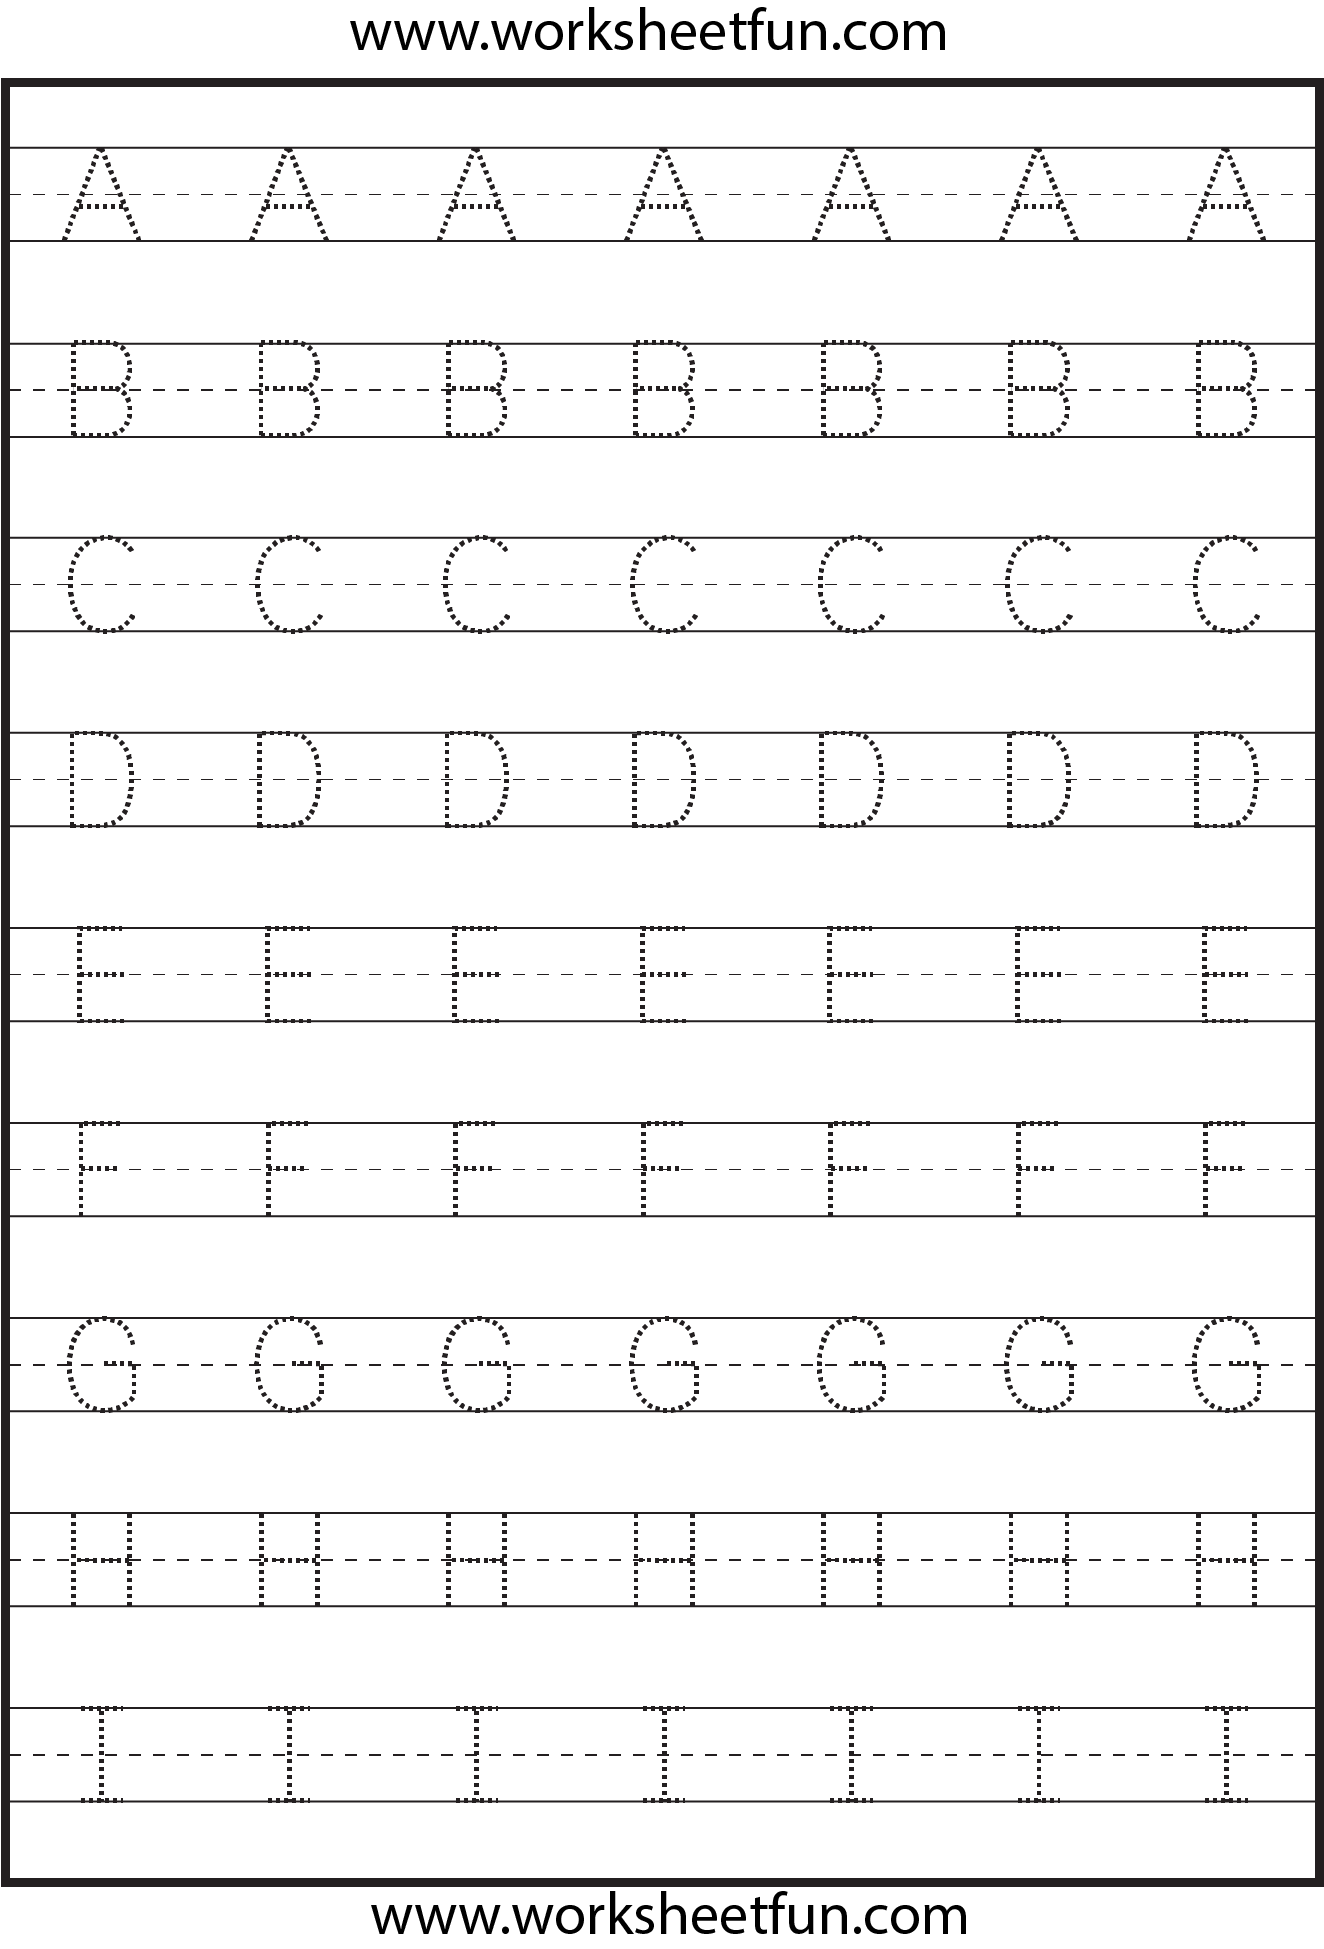 Worksheet Tracing Alphabet tracing uppercase letters capital 3 worksheets letter tracing